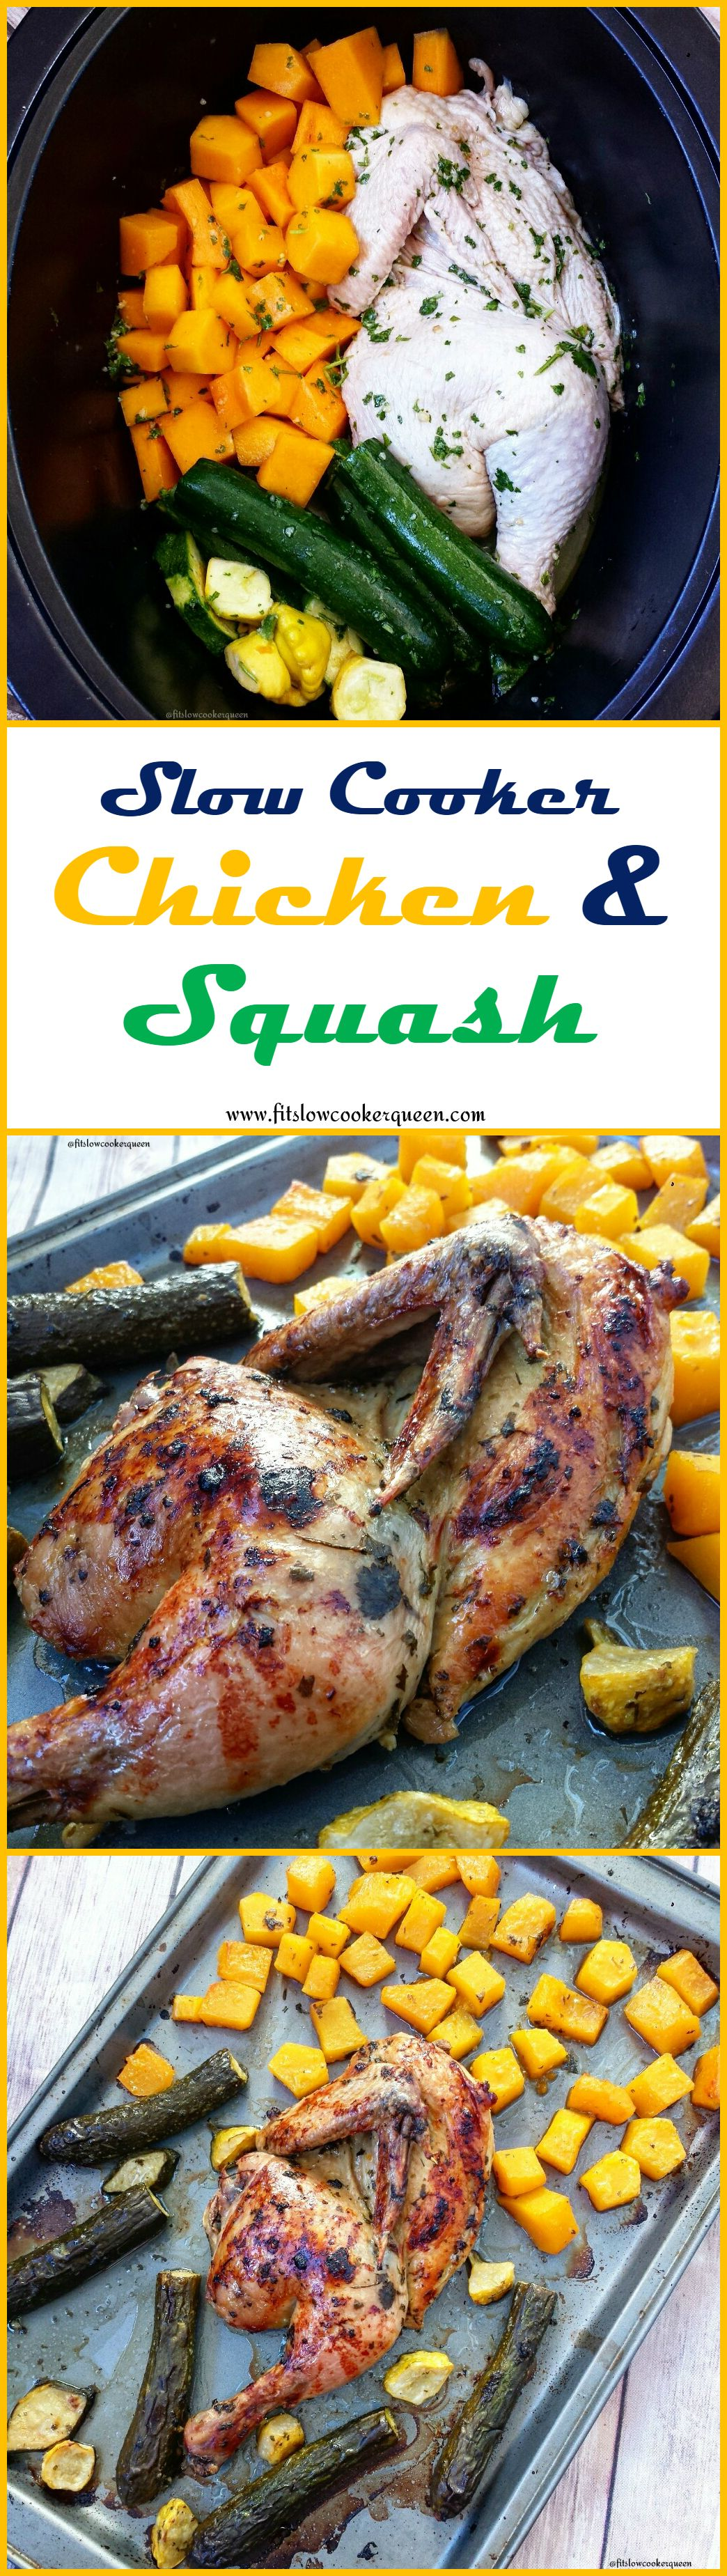 Photo of Slow Cooker Chicken & Squash